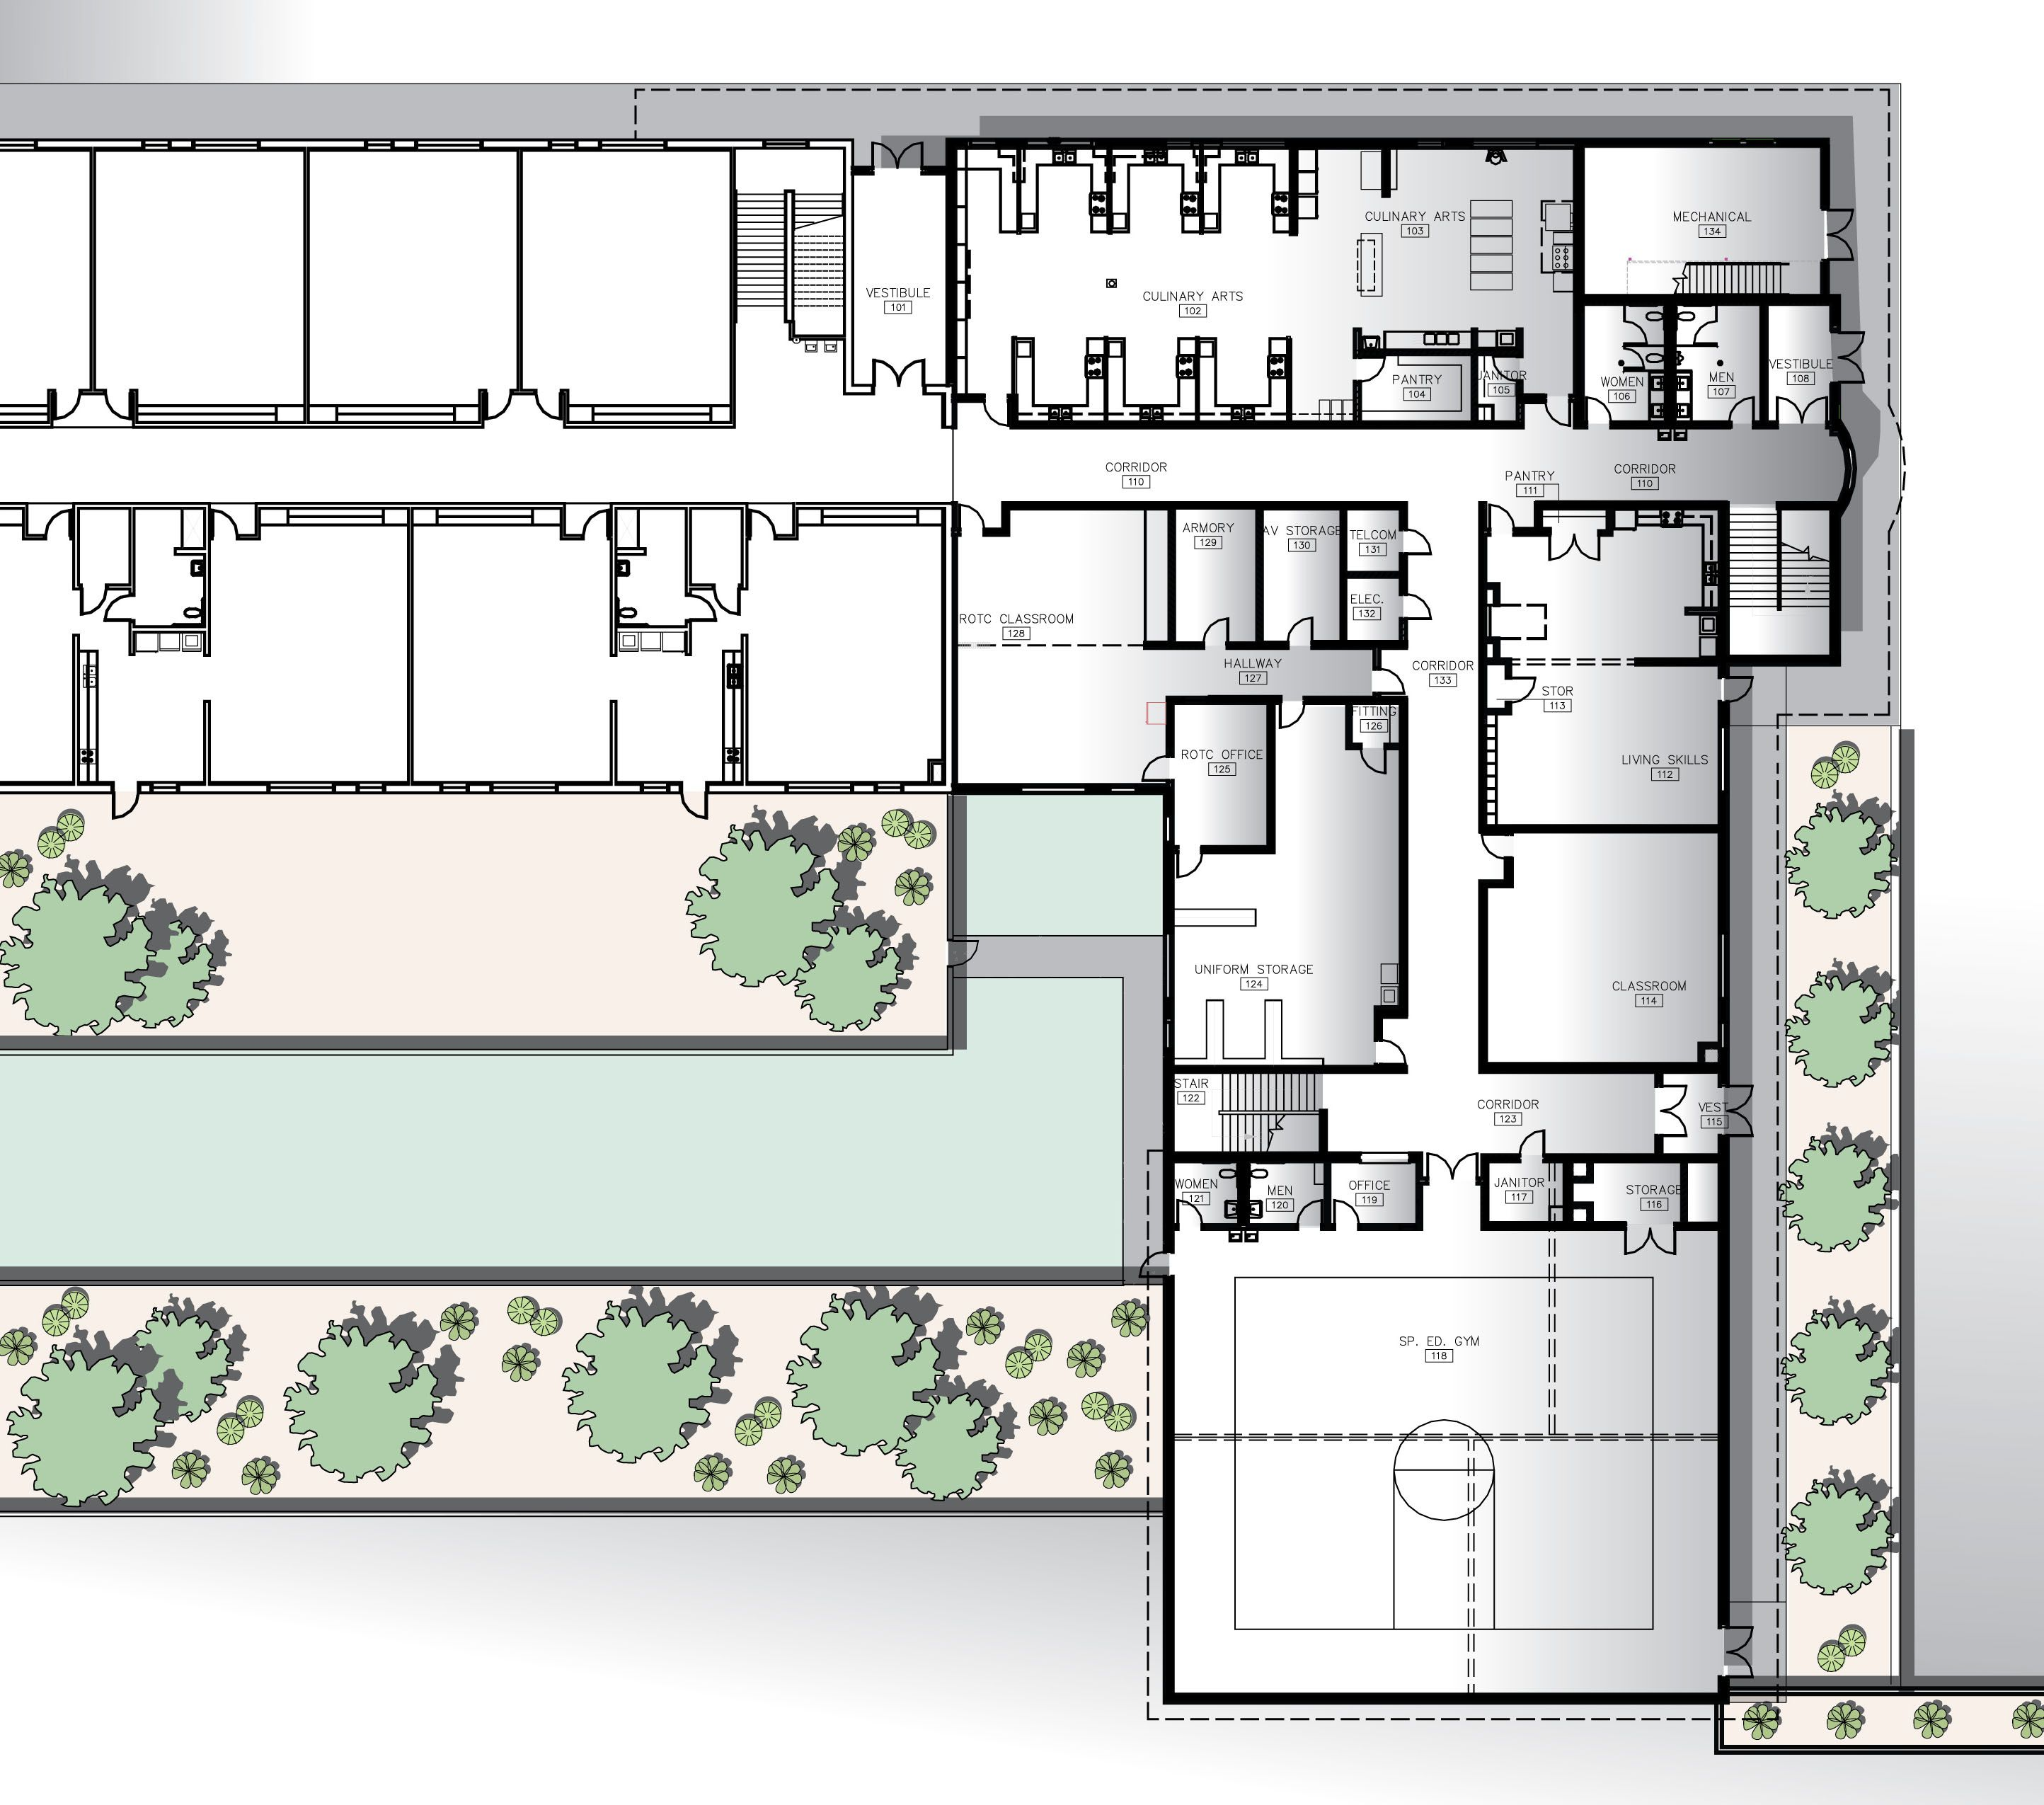 Modern Classroom Pdf : High school floor plans plan free